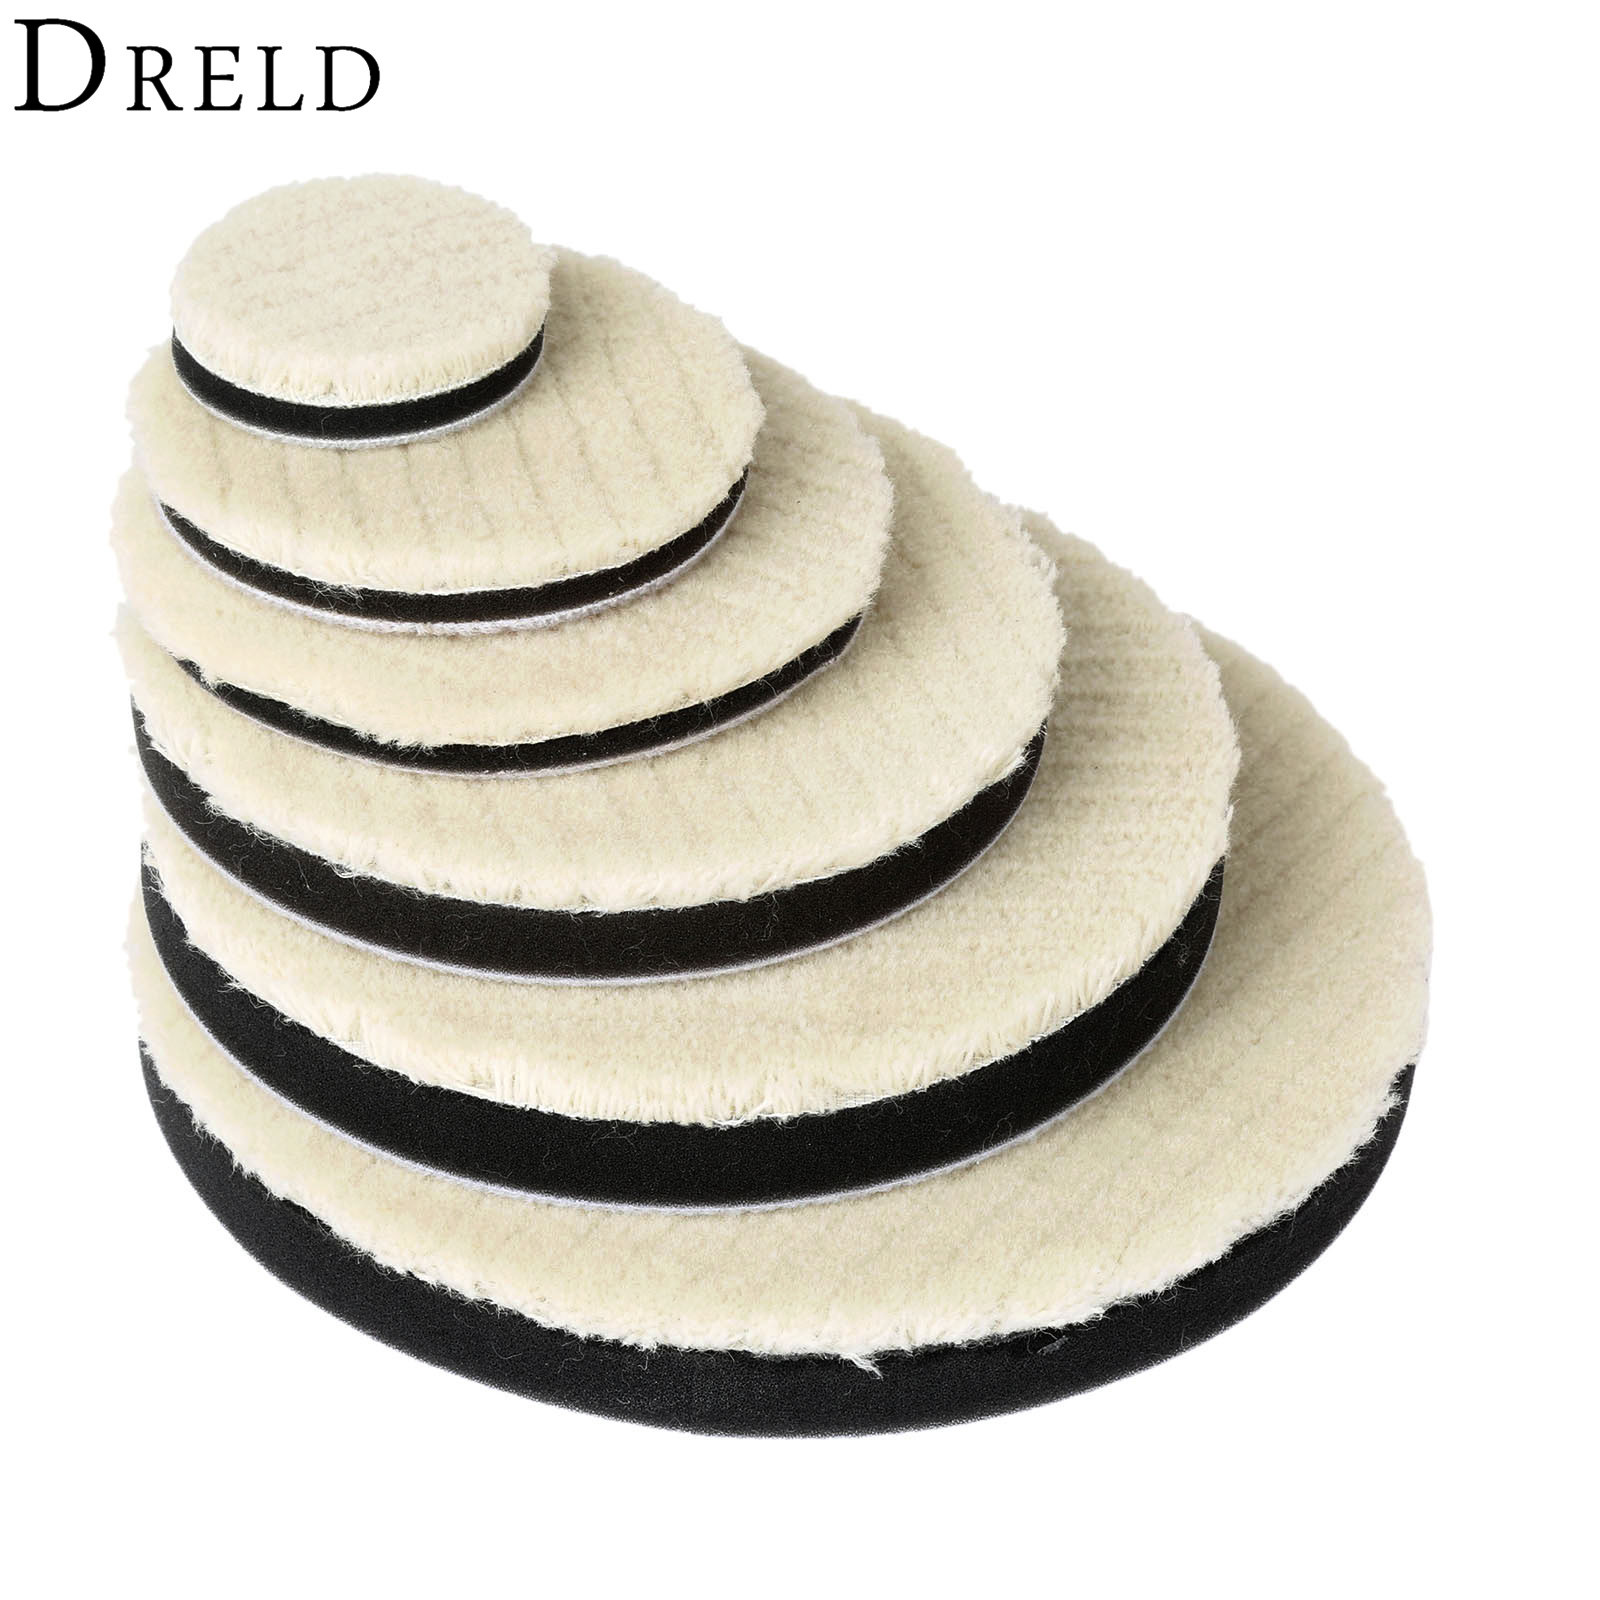 DRELD 2Pcs 2/3/4/5/6/7 Inch Woolen Polishing Pad For Car Polisher Waxing Buffing Grinding Polishing Wheel Disc For Care Cleaning